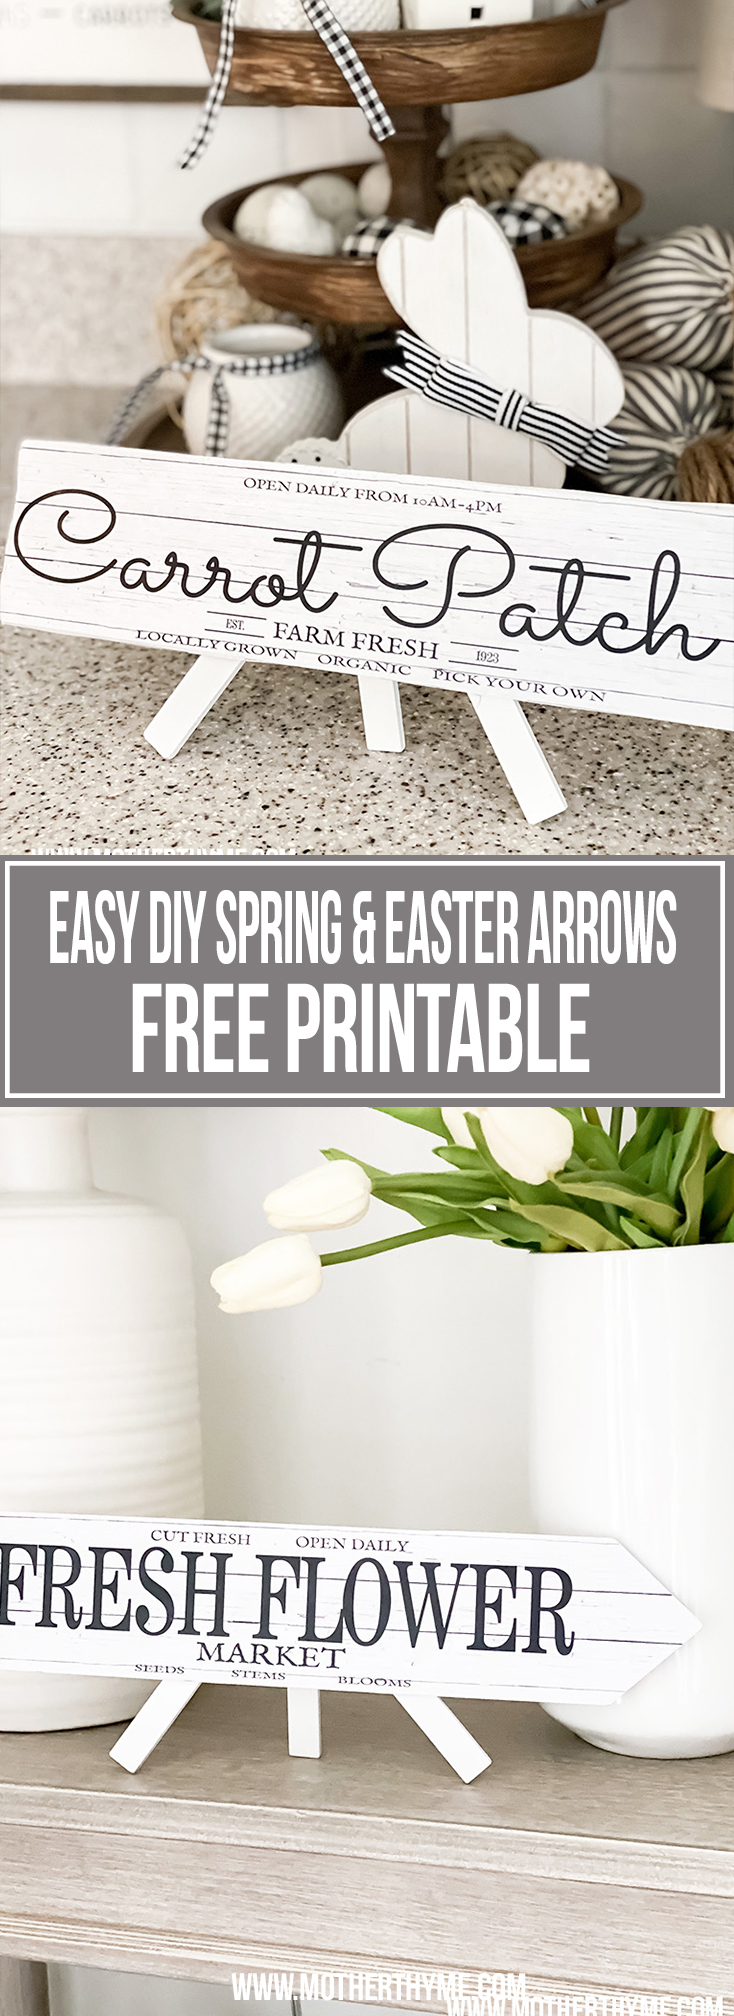 EASY DIY SPRING AND EASTER ARROWS WITH FREE PRINTABLES